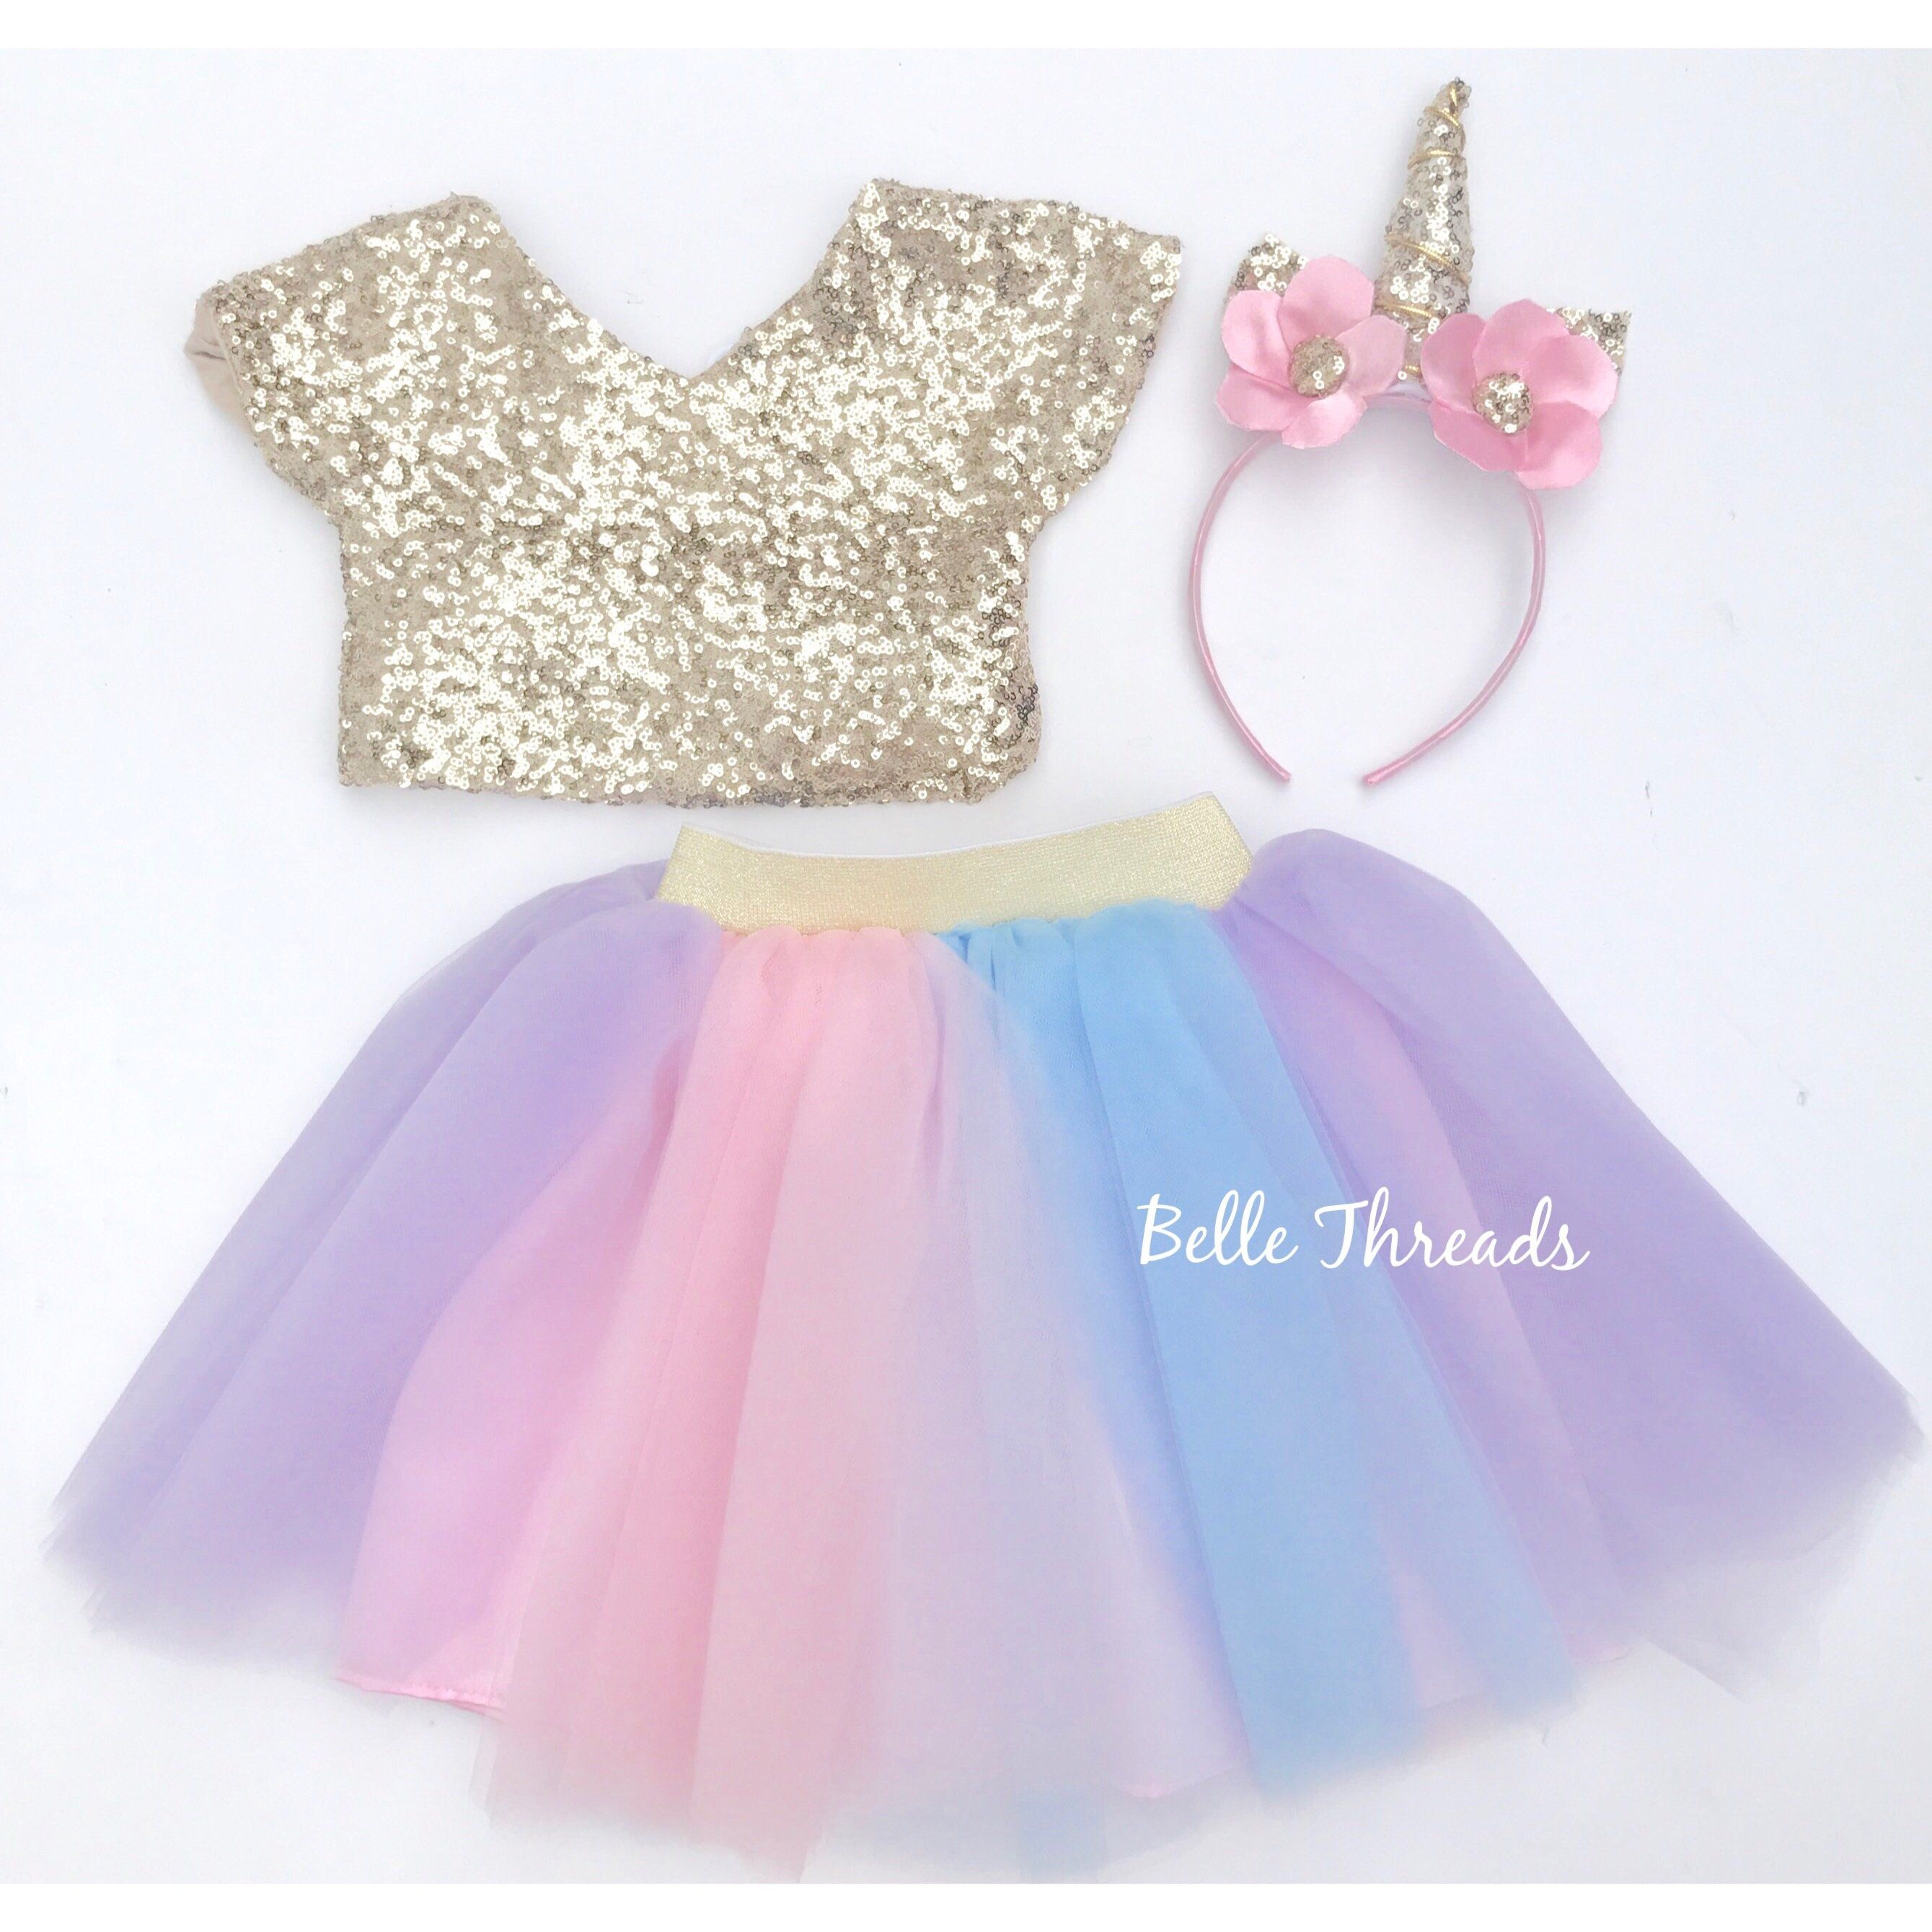 c1d7523ec5d Unicorn Tutu Set - Gold Sequin Top   Rainbow Tutu Set - Unicorn Dress –  Belle Threads